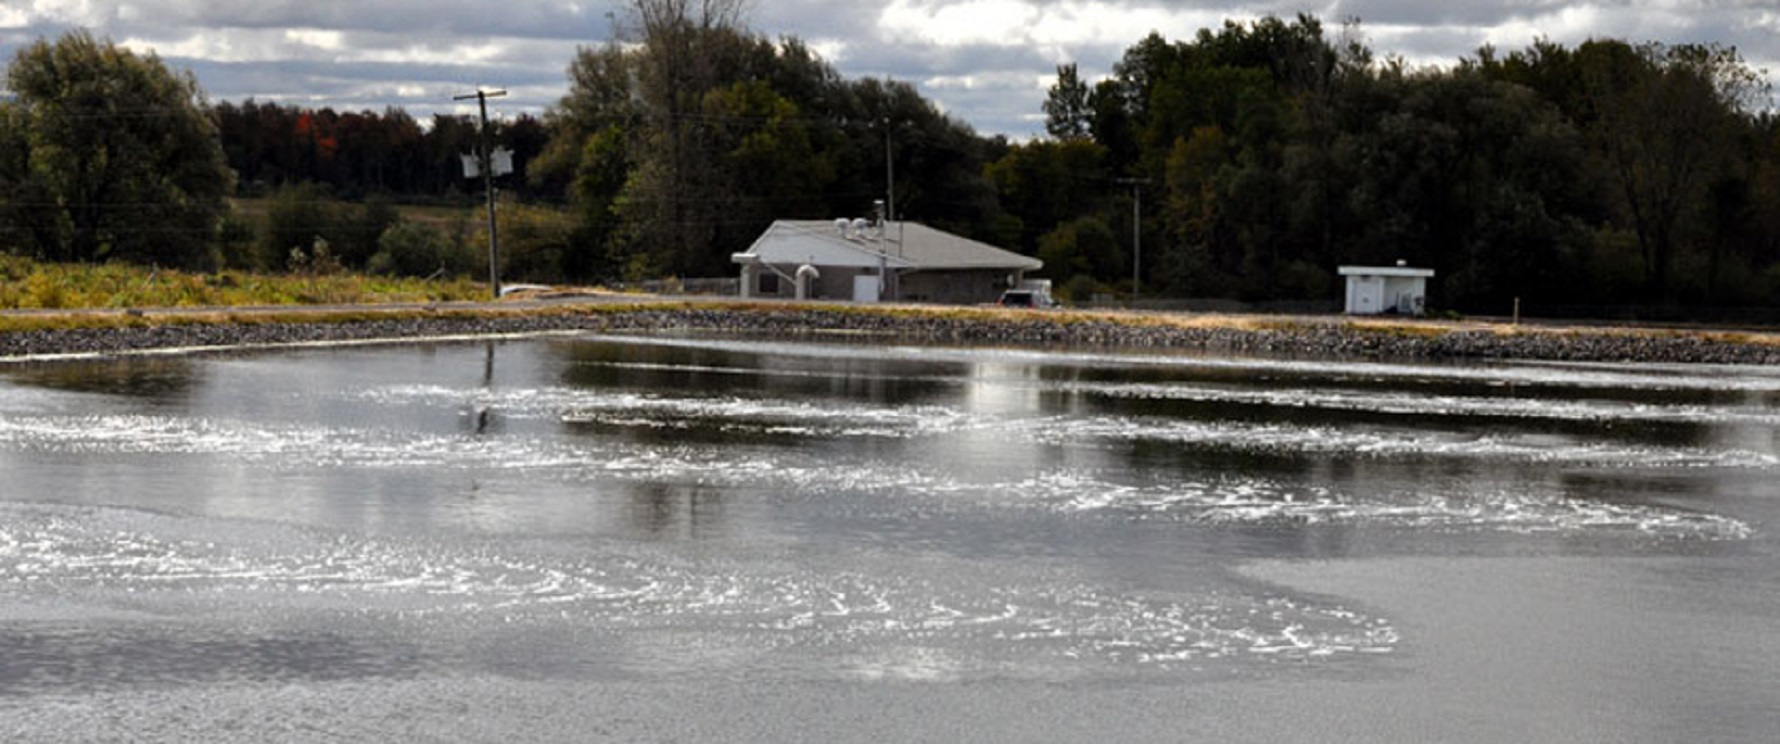 OctoAir is effective for providing wastewater aeration